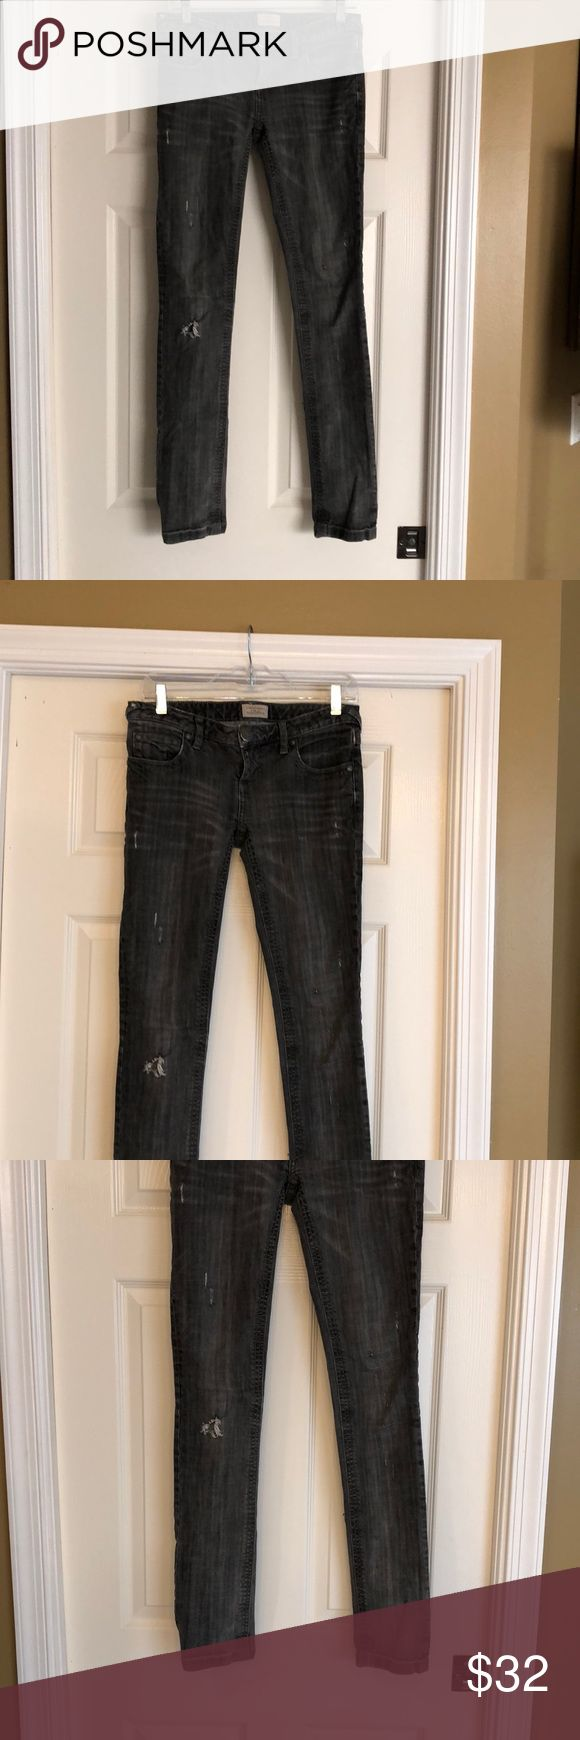 "Gray Faded & Ripped Free People Jeans Adorable faded and ripped skinny jeans in great faded and ripped condition.  Approximately 33"" inseam. Free People Jeans Skinny"